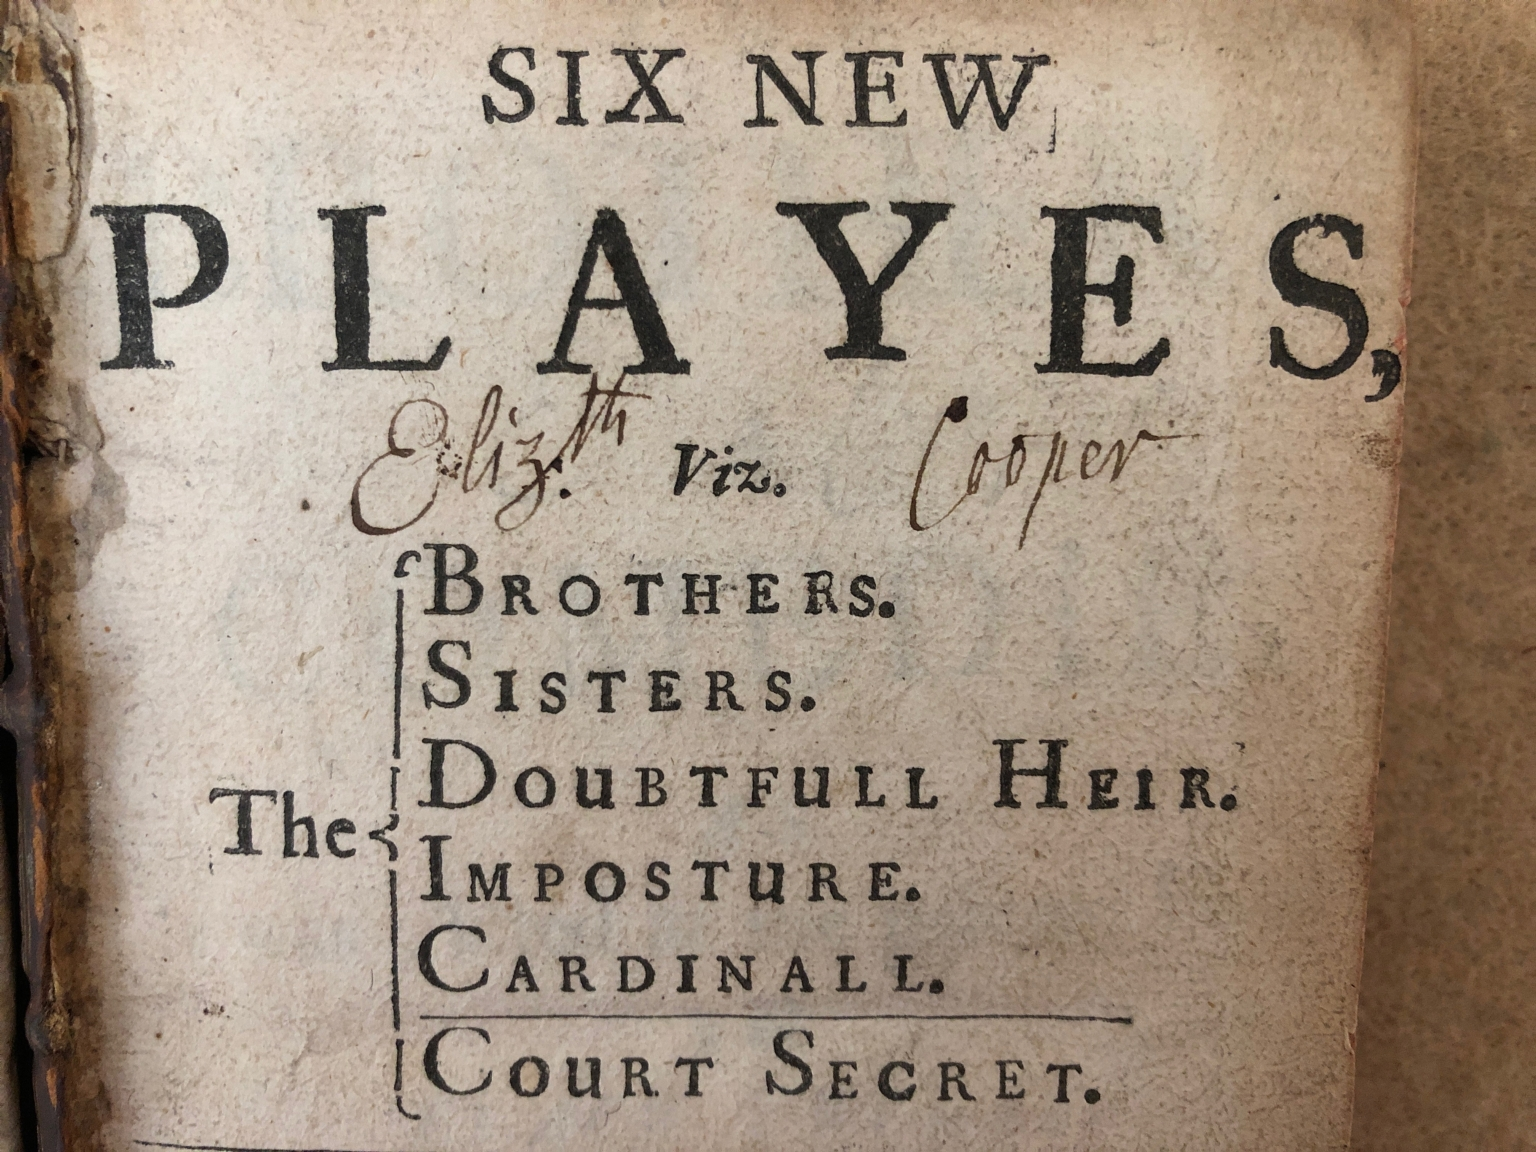 Six new playes : viz. The brothers. Sisters. Doubtfull heir. Imposture. Cardinall. Court secret. The five first were acted at the Private House in Black Fryers with great applause. The last was never acted. All written by James Shirley. Never printed before.